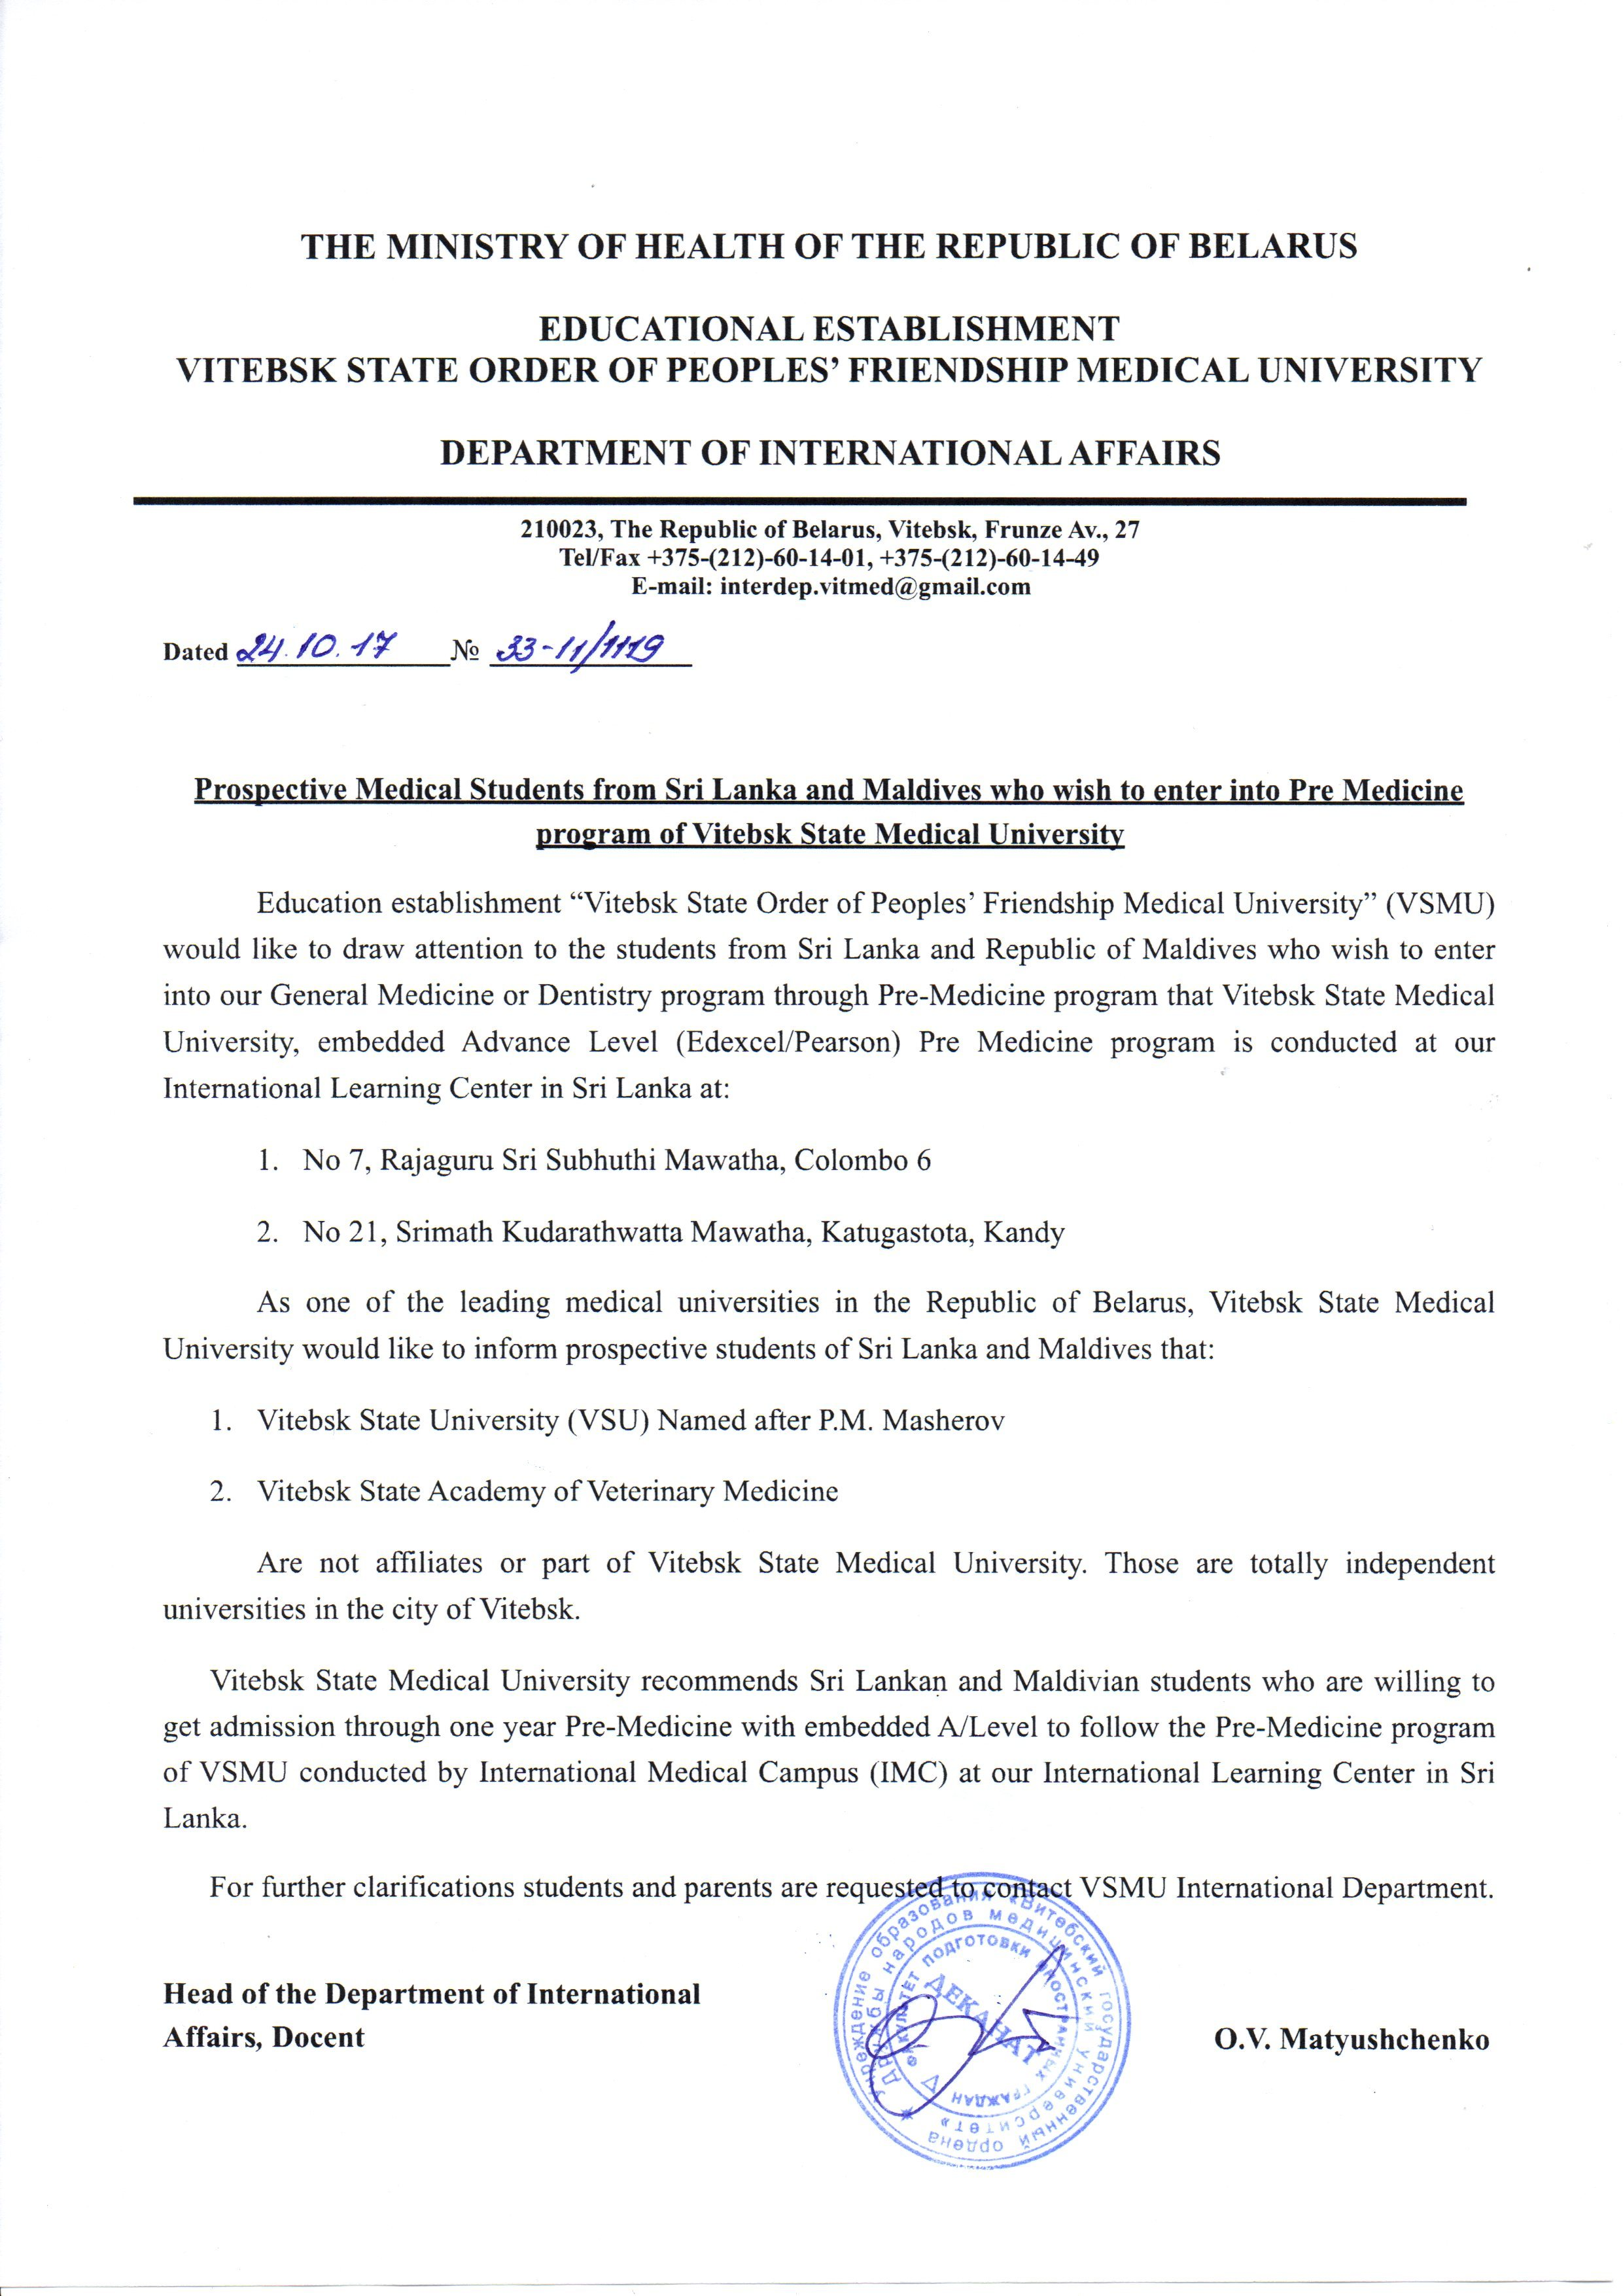 Admission vitebsk state order of peoples friendship medical to prospective medical students and parents from sri lanka and repubpic of maldives stopboris Choice Image